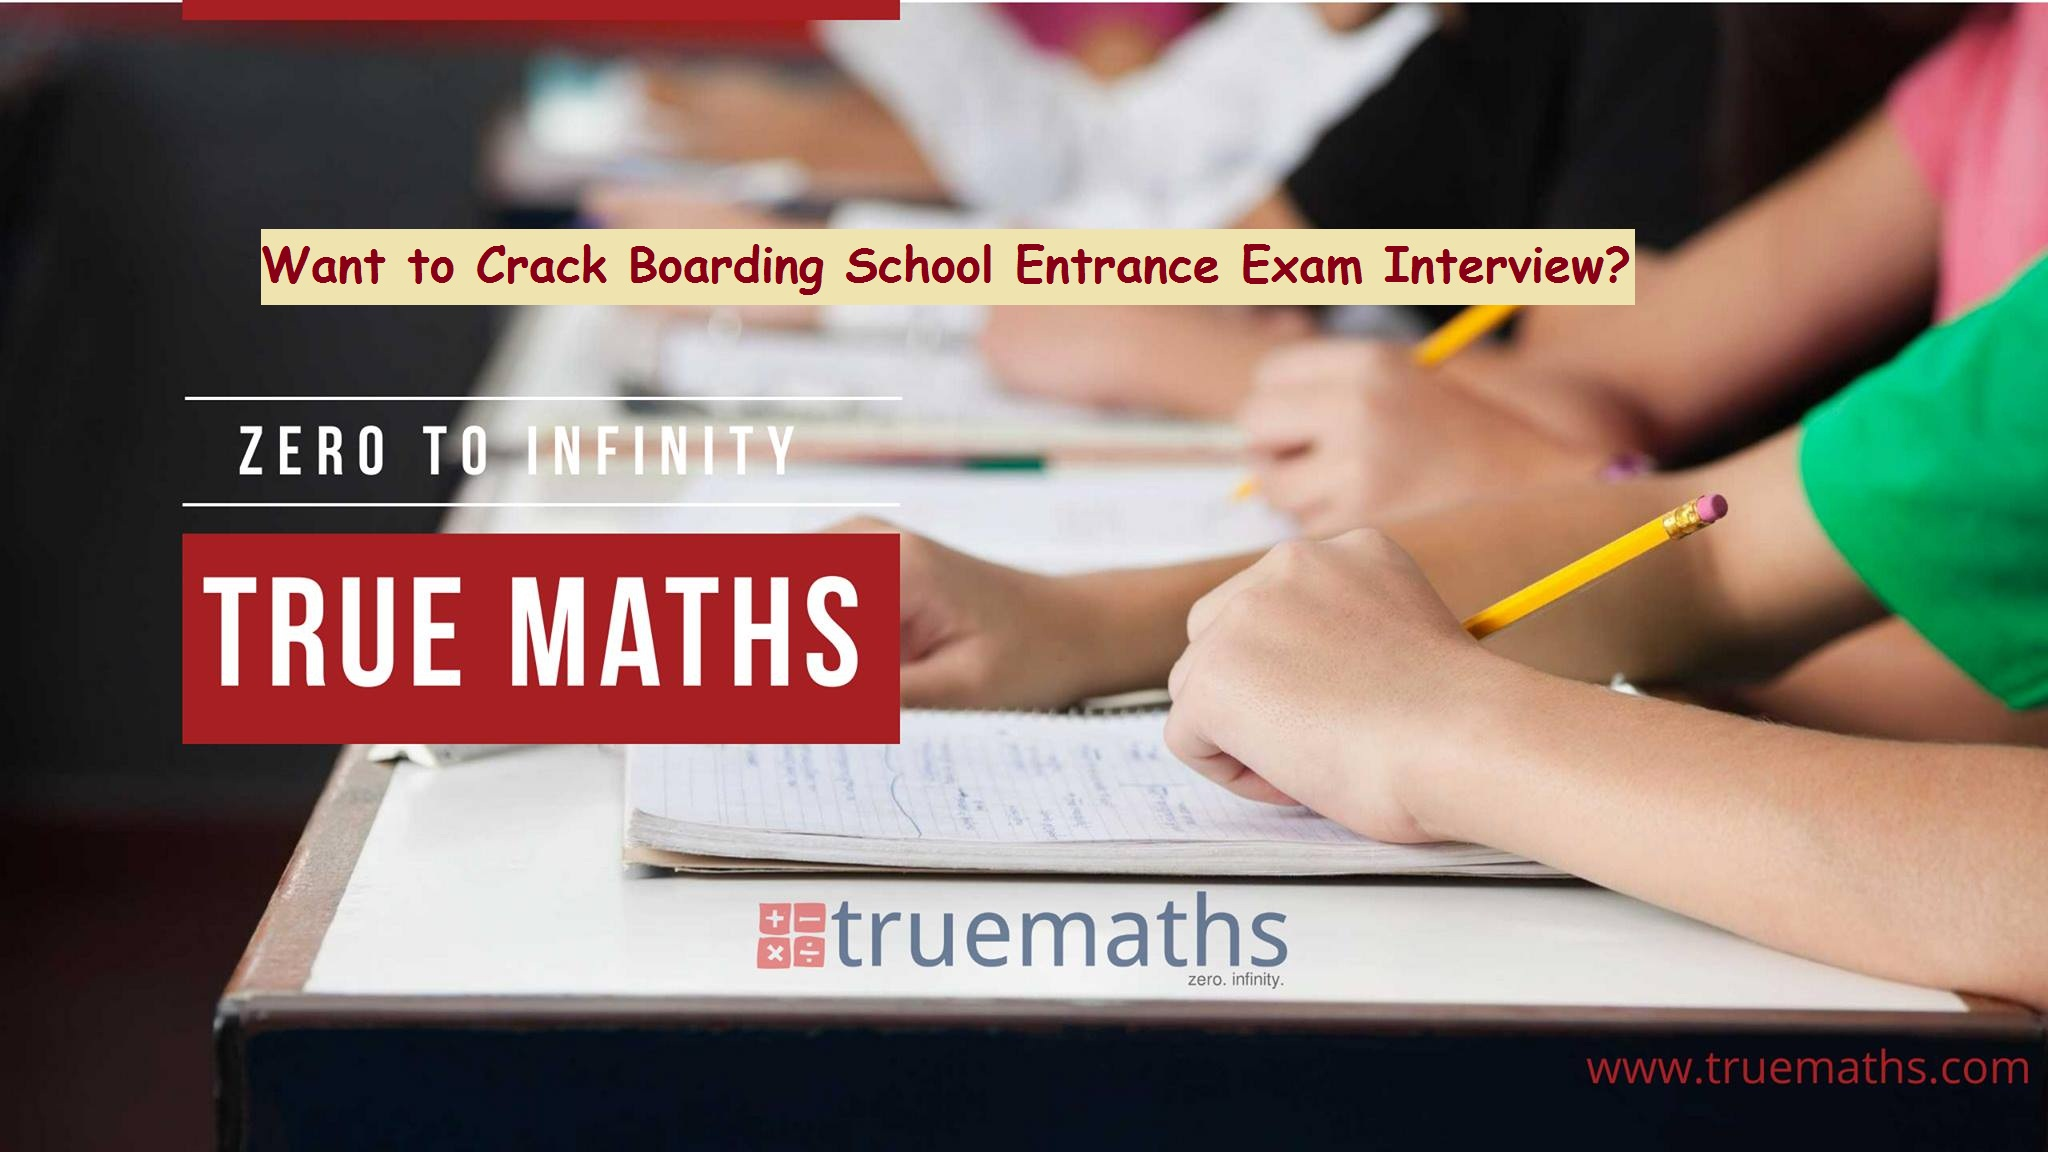 Want to Crack Boarding School Entrance Exam Interview?